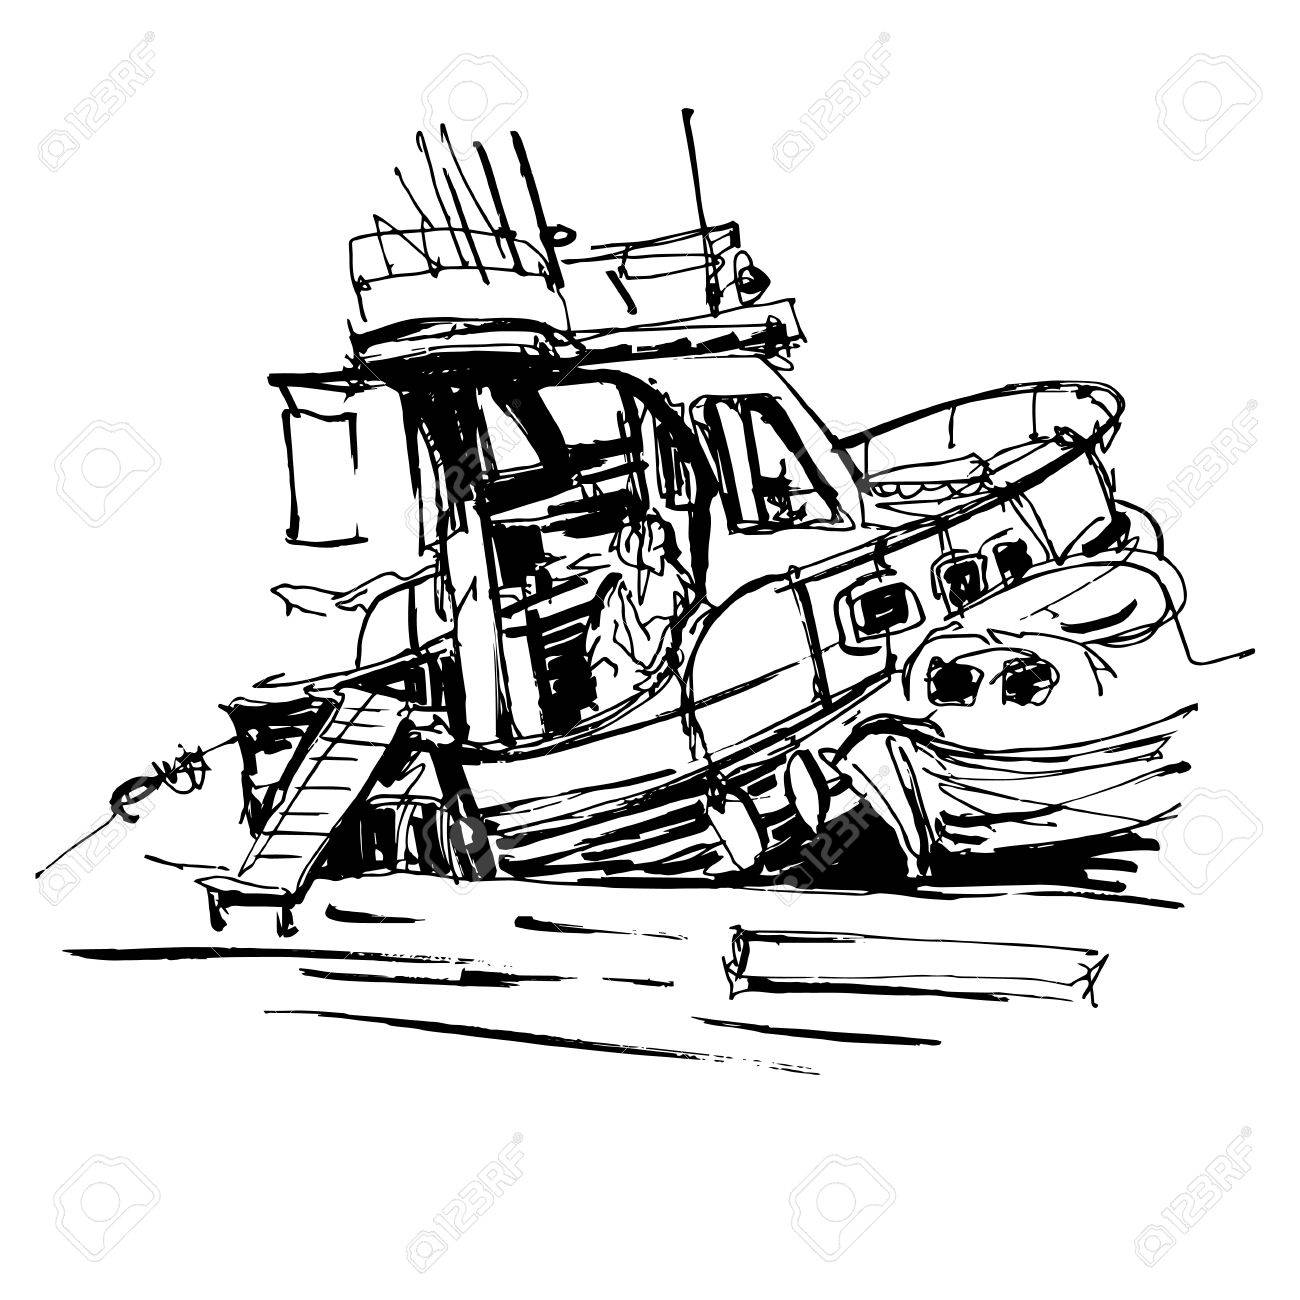 1300x1300 Black And White Ink Sketch Drawing Of Boat In Marine, Travel